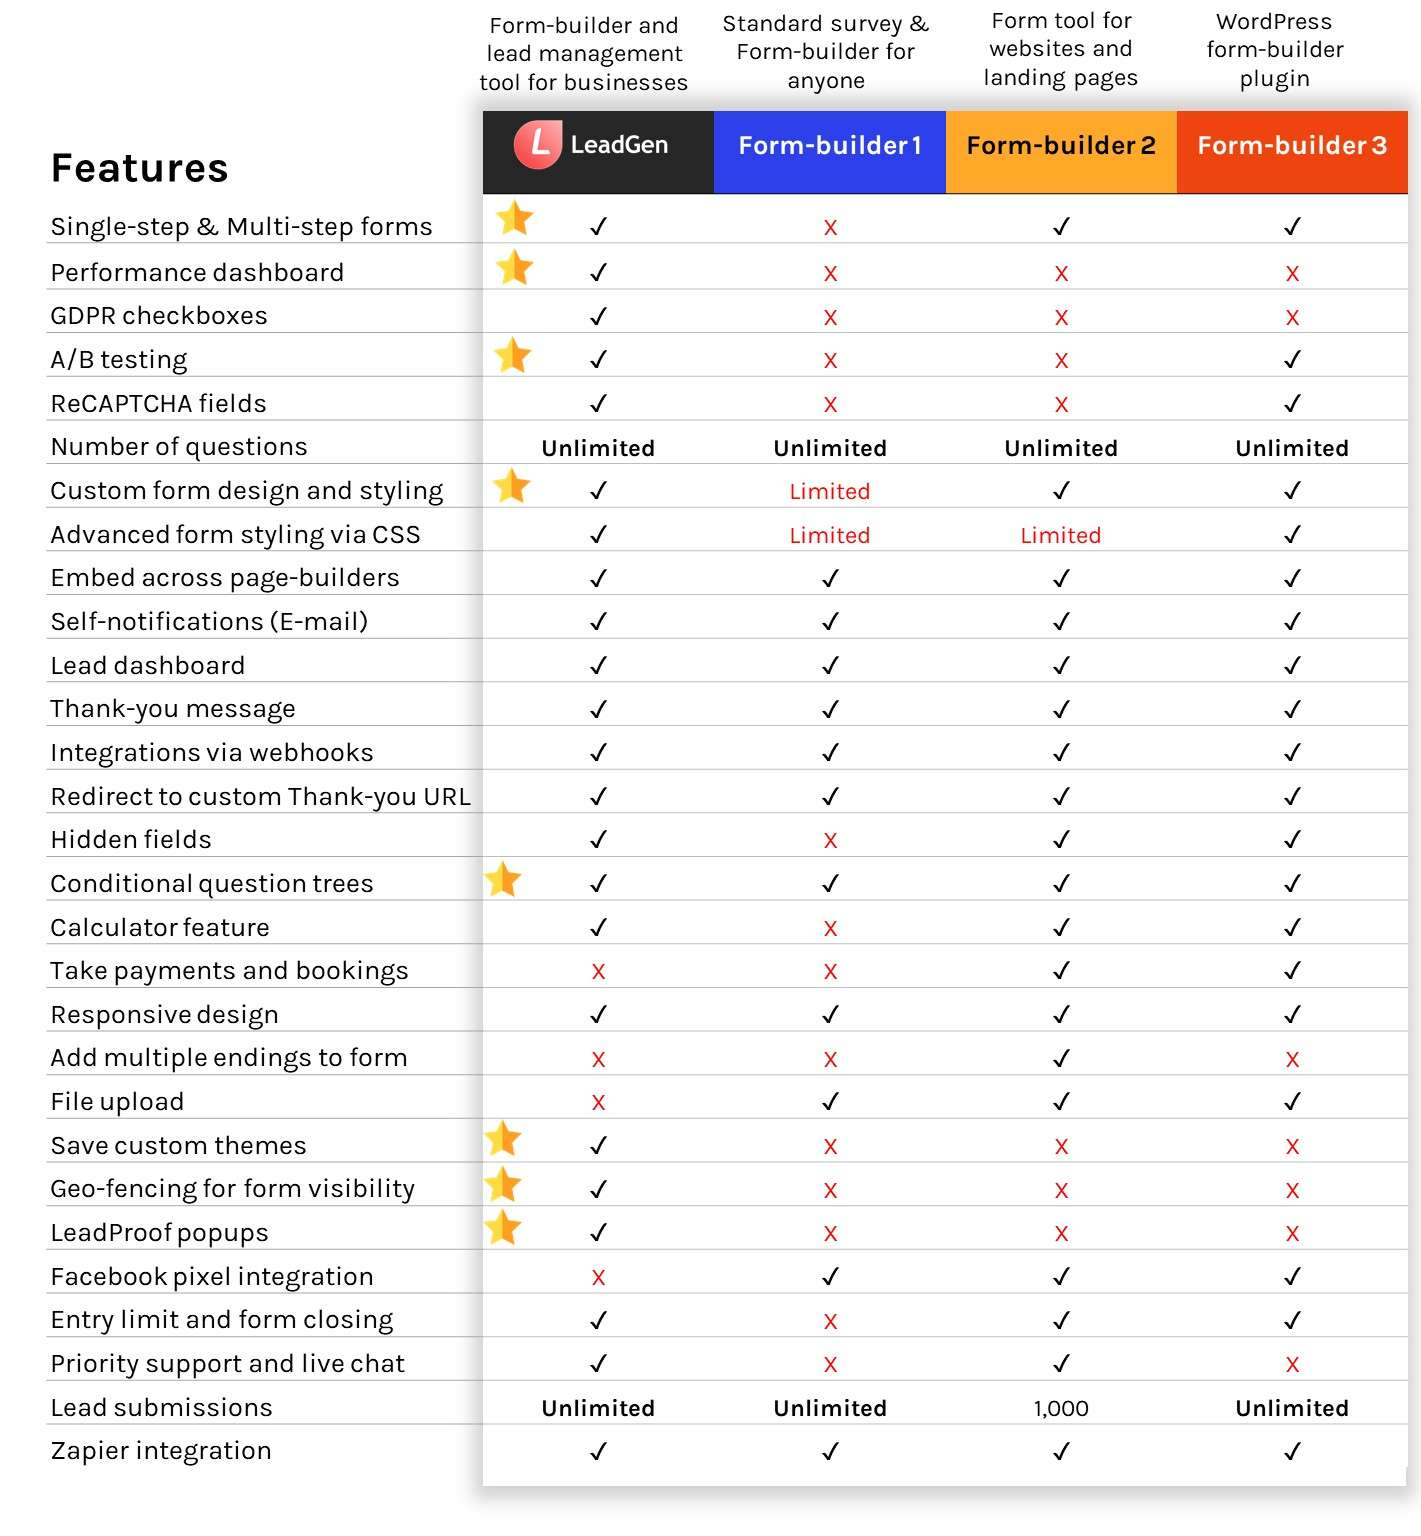 LeadGen App full features table and comparison to other form tools